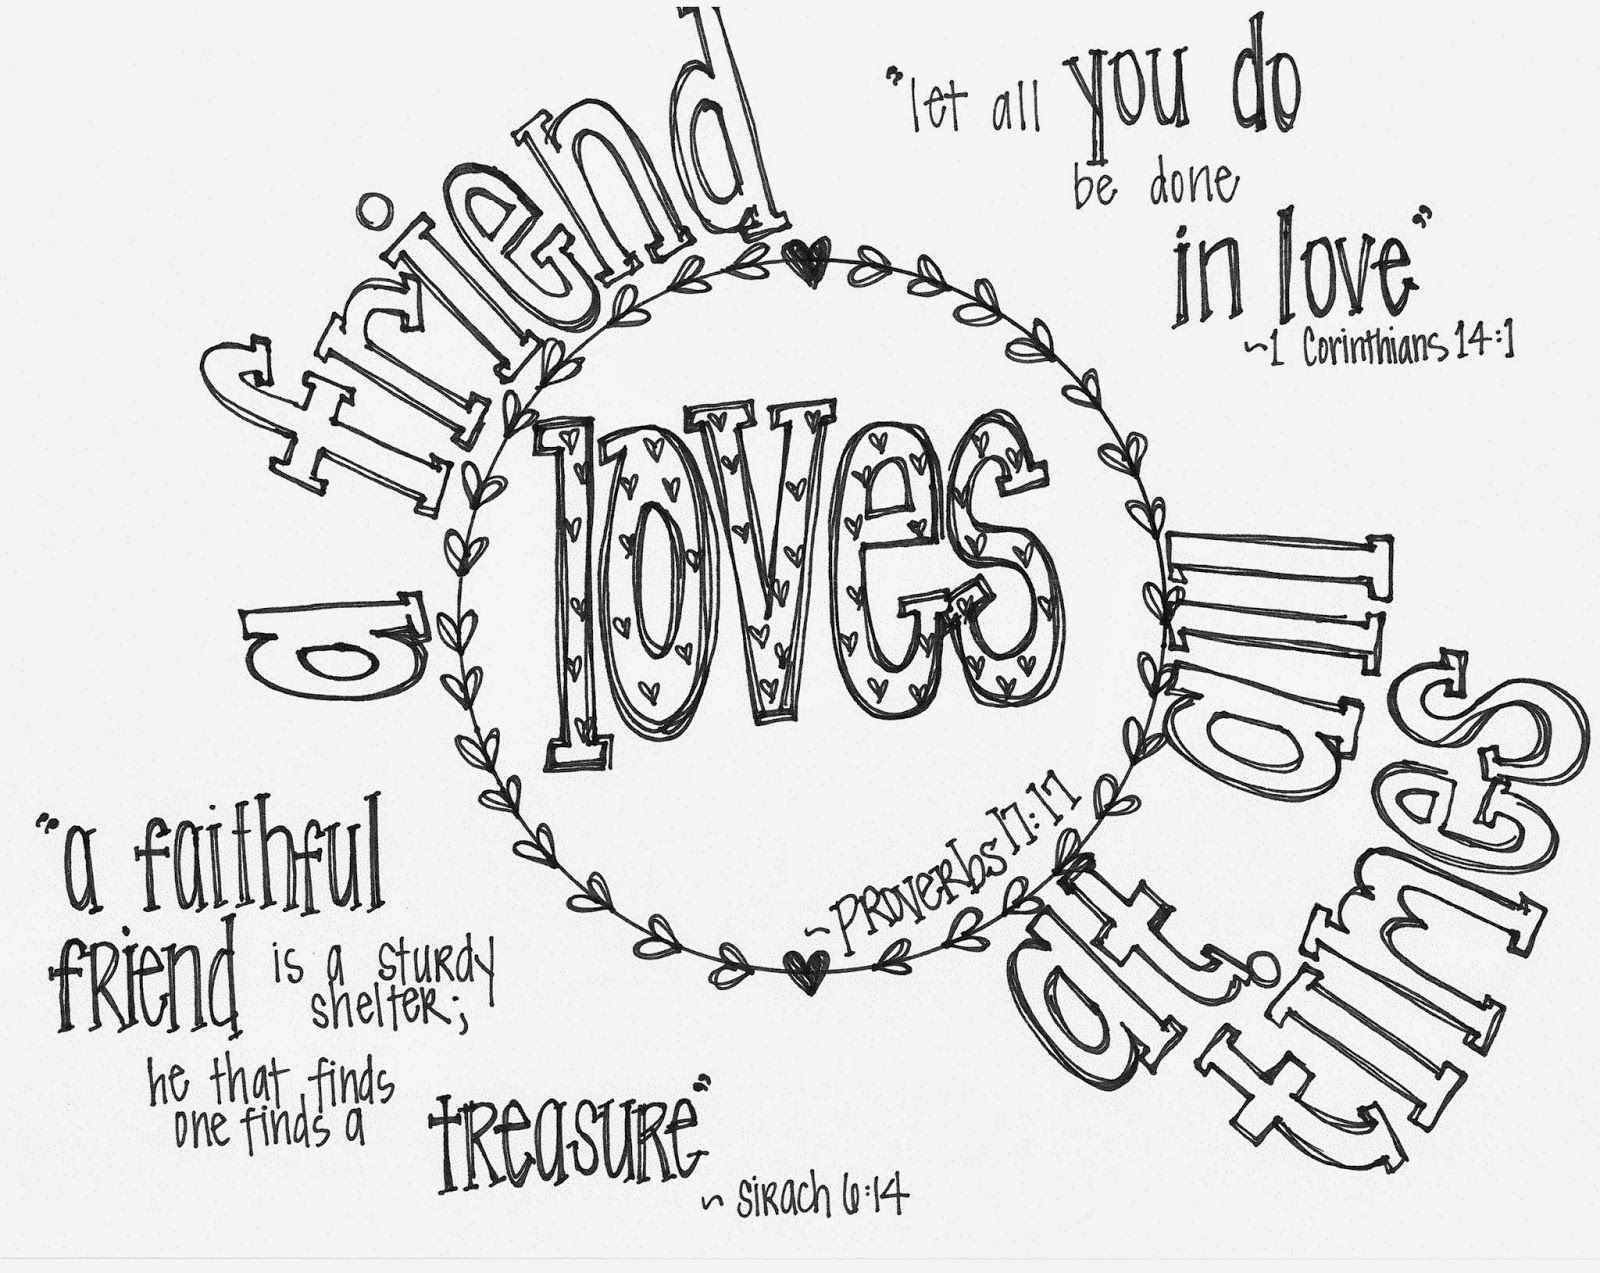 Coloring pages with bible verses - Https Drive Google Com File D 0b5etrkl51fhmwnczalrrcgj5cue Best Friend Coloring Pagescoloring Pages With Quotescoloring Bible Versesbible